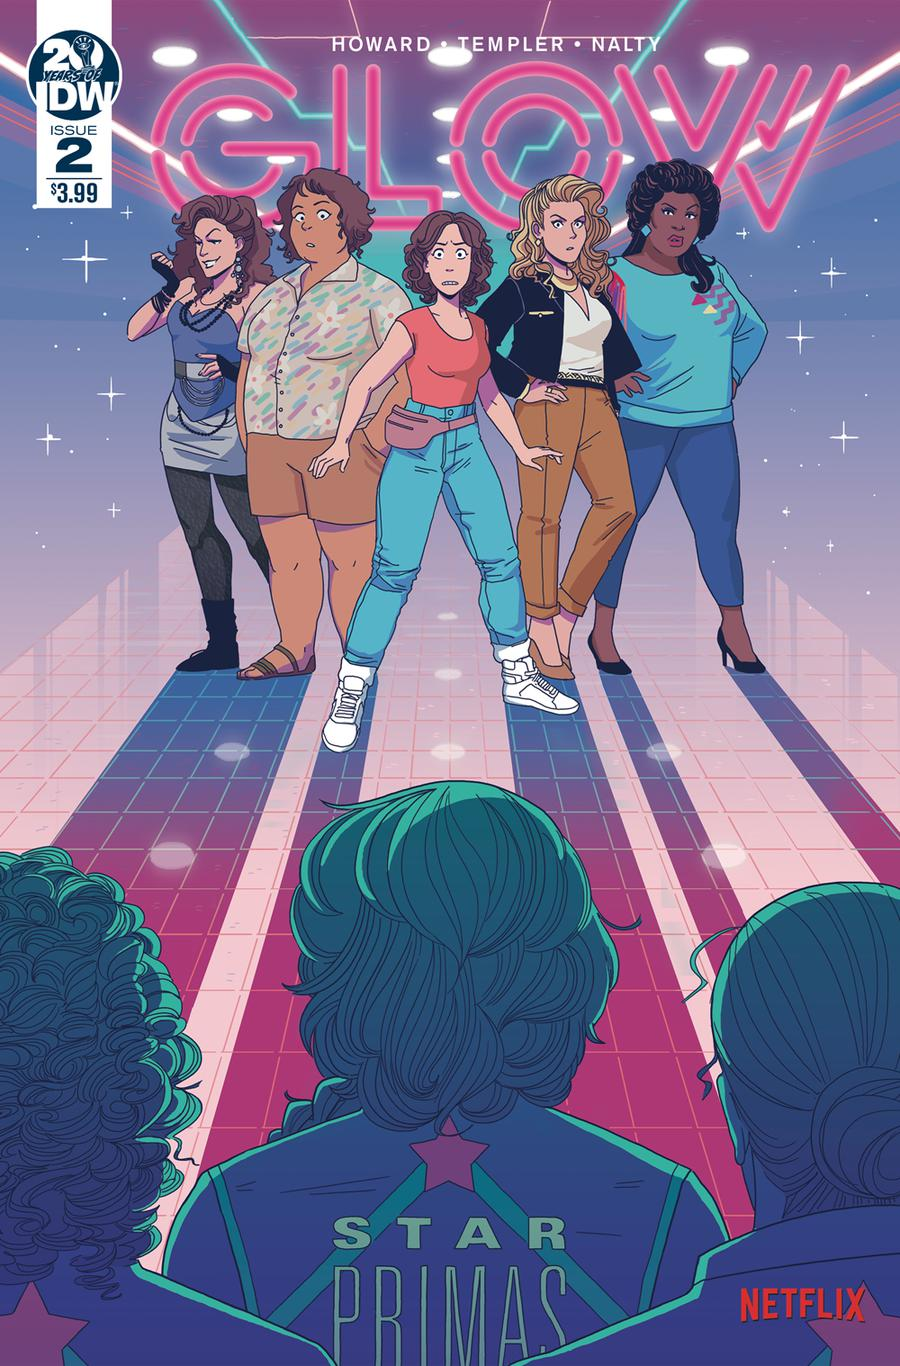 GLOW #2 Cover A Regular Hannah Templer Cover